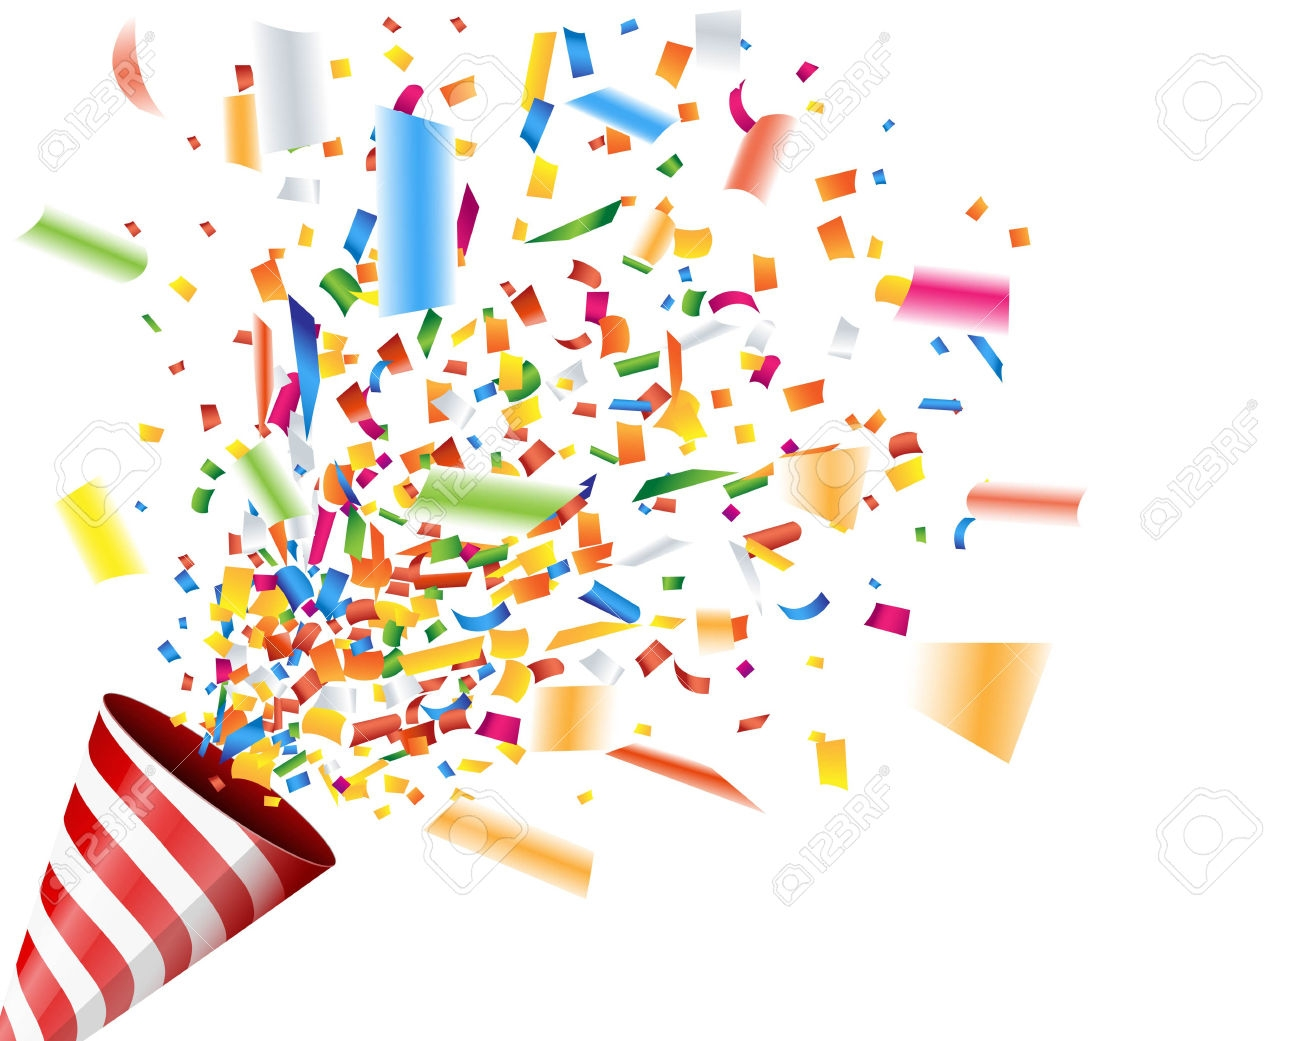 Celebrate clipart confetti. New celebration design digital